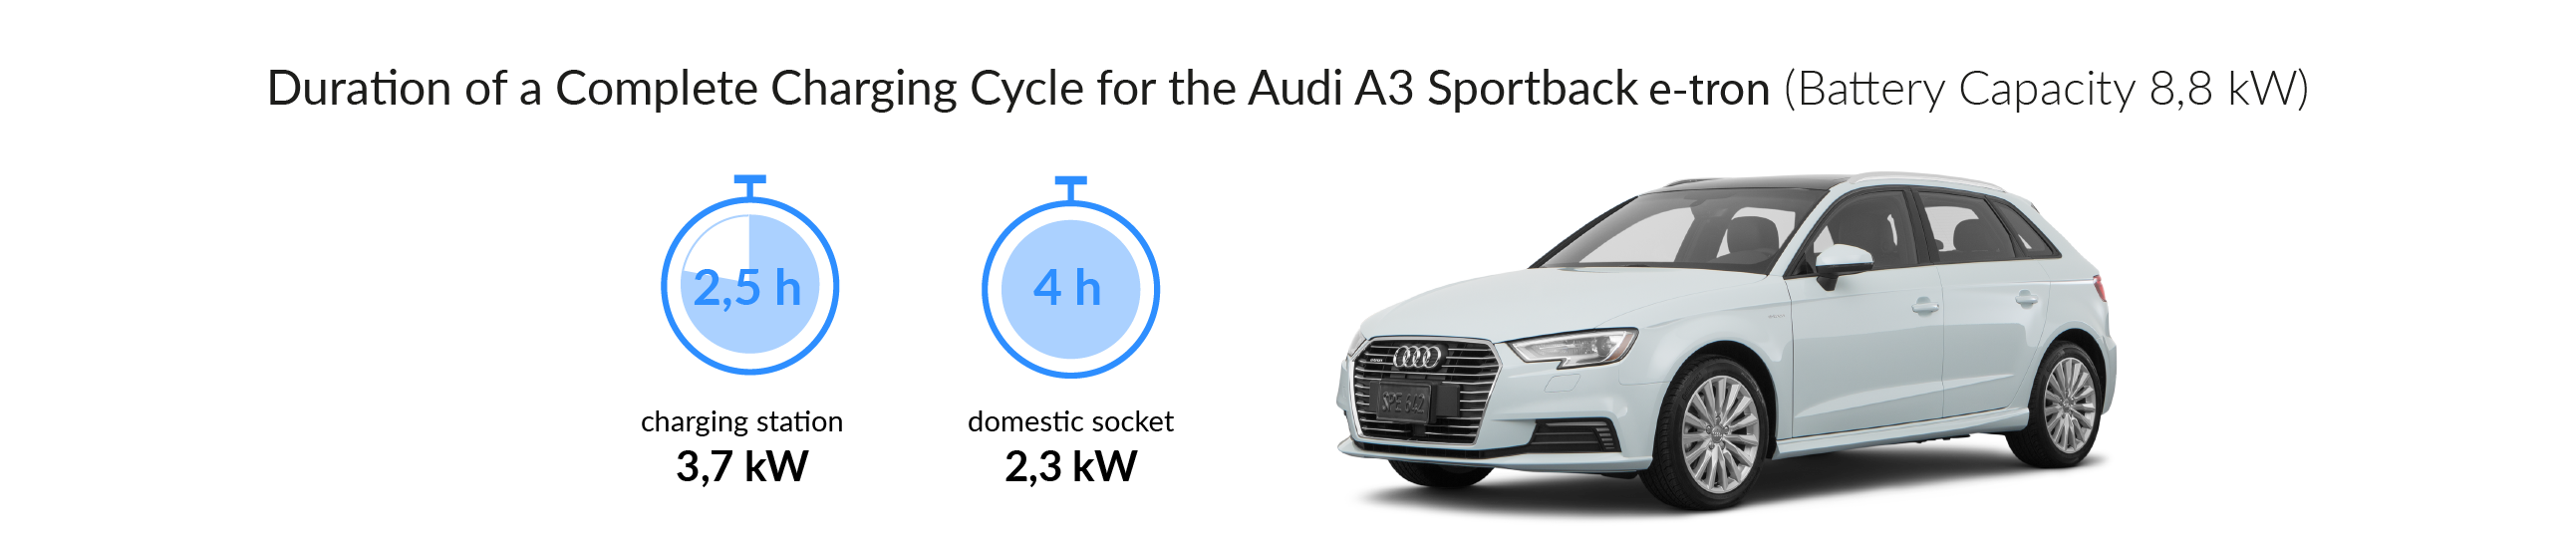 Charging time for the Audi A3 sportback e-tron